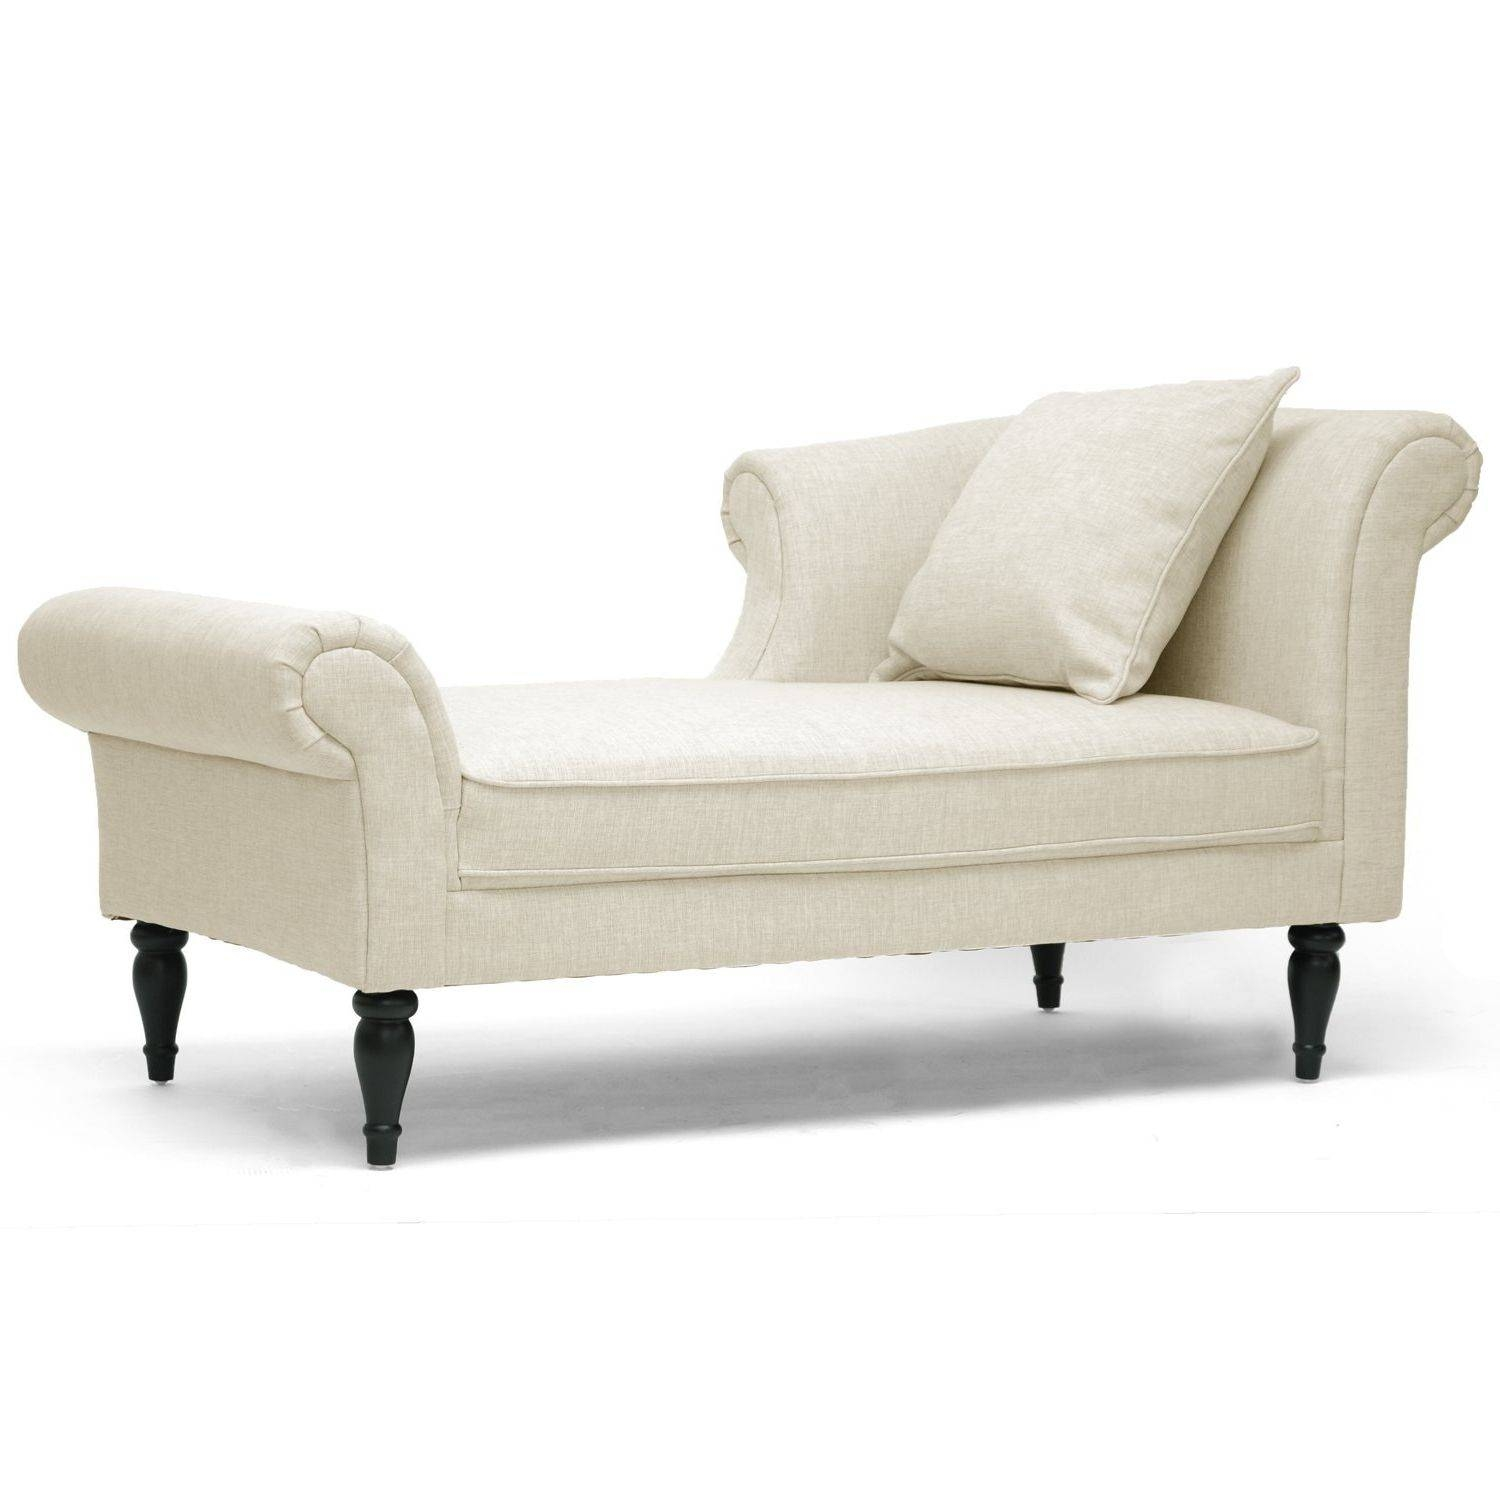 Bedroom: Stupendous Bedroom Lounge Chair. Love Bedroom. Bedroom pertaining to Bedroom Sofa Chairs (Image 10 of 30)